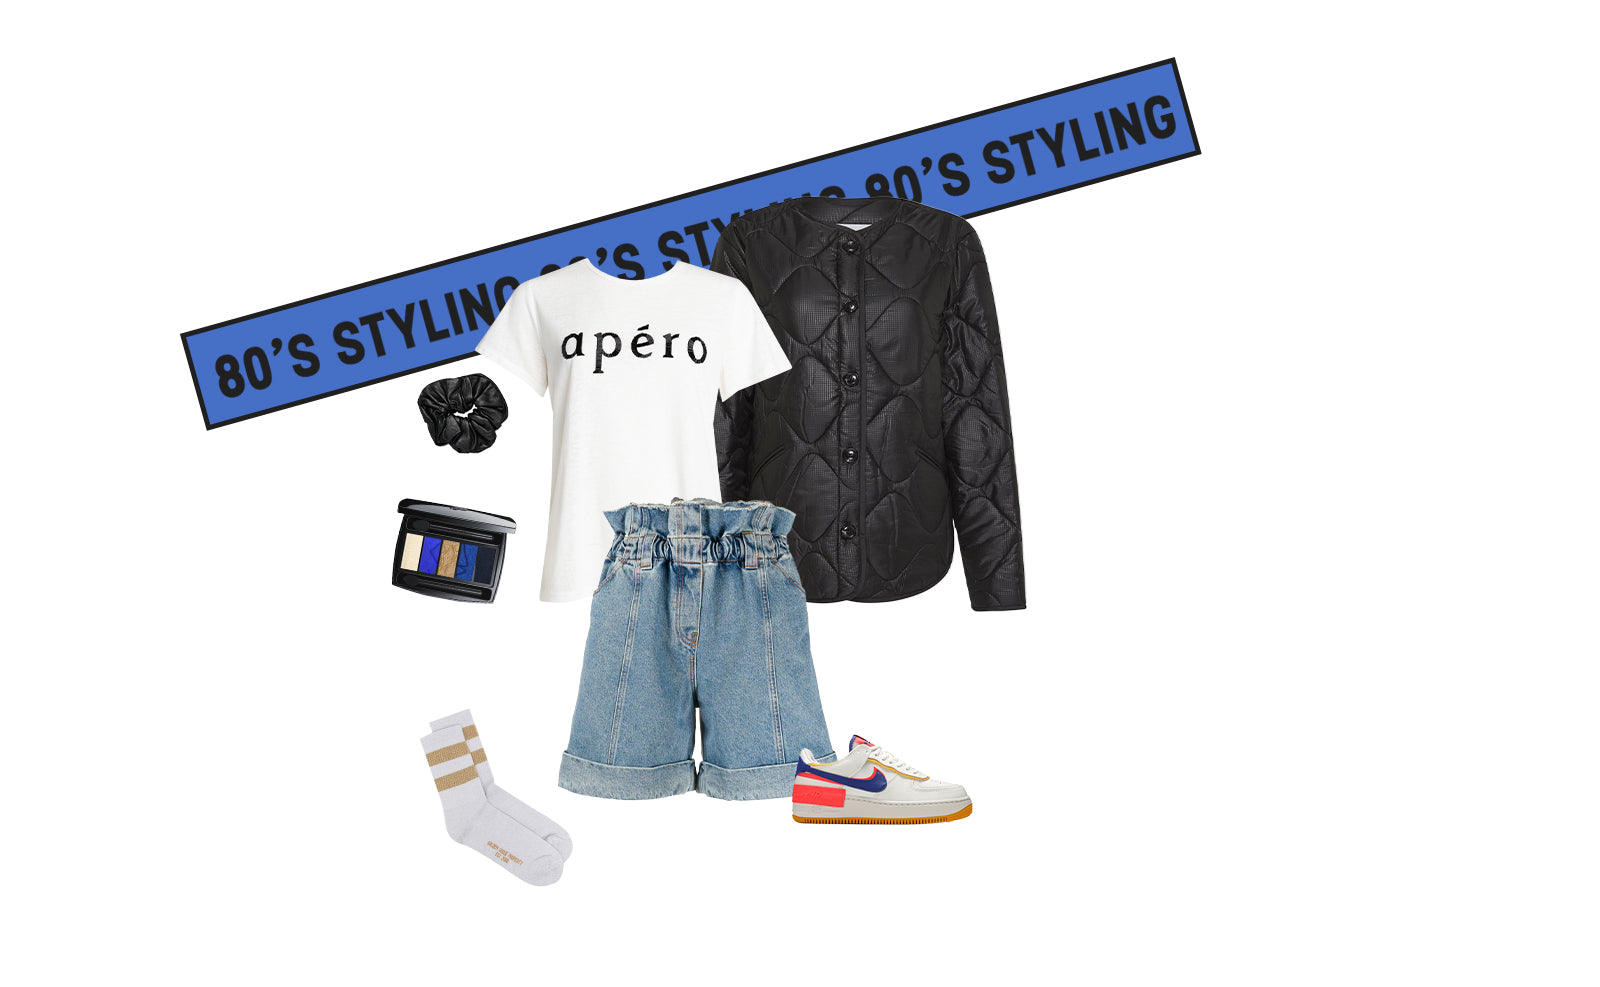 80s Styling